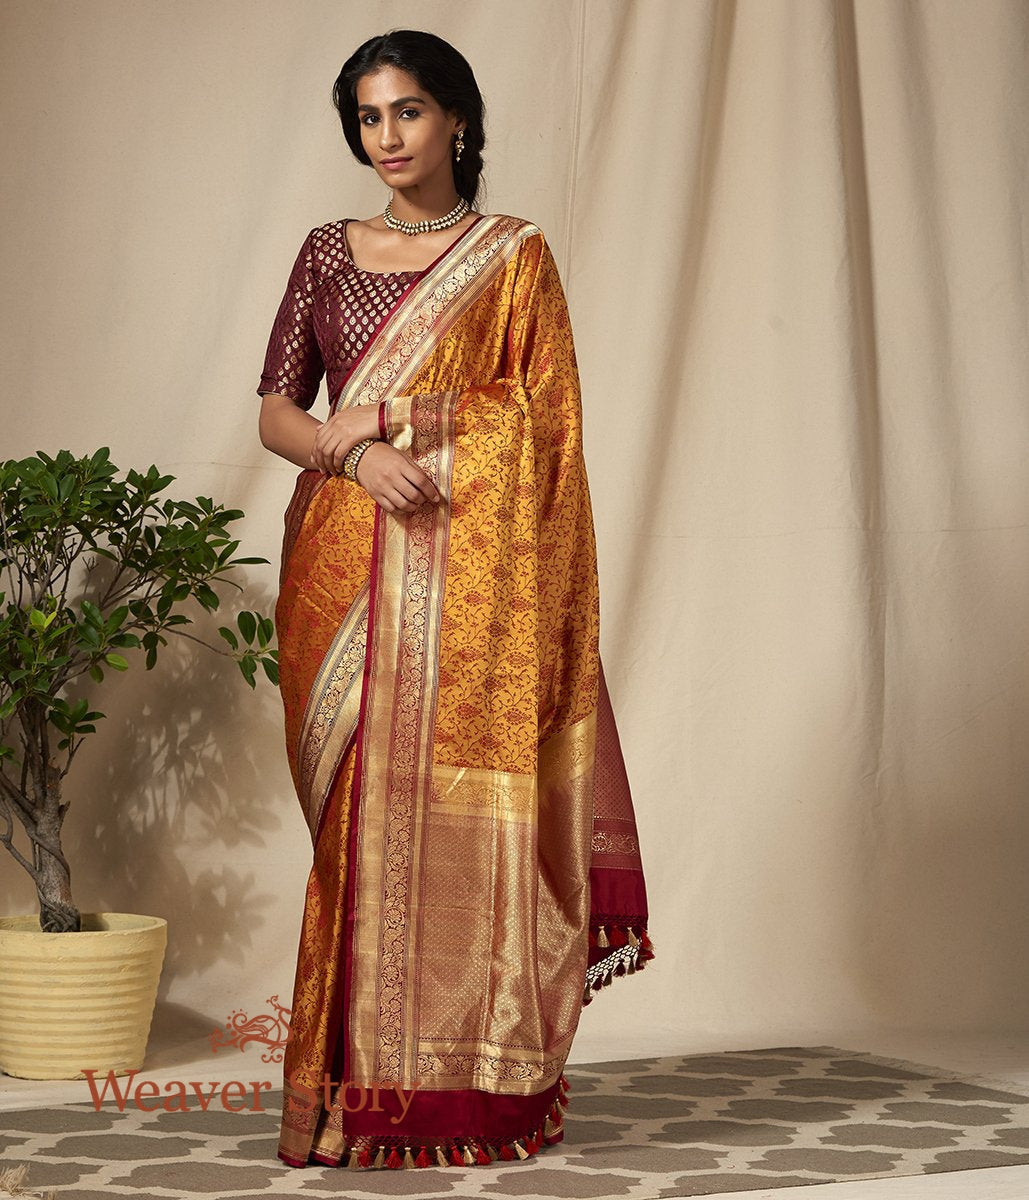 Handwoven Red and Mustard Banarasi Tanchoi Saree with Floral Zari Border